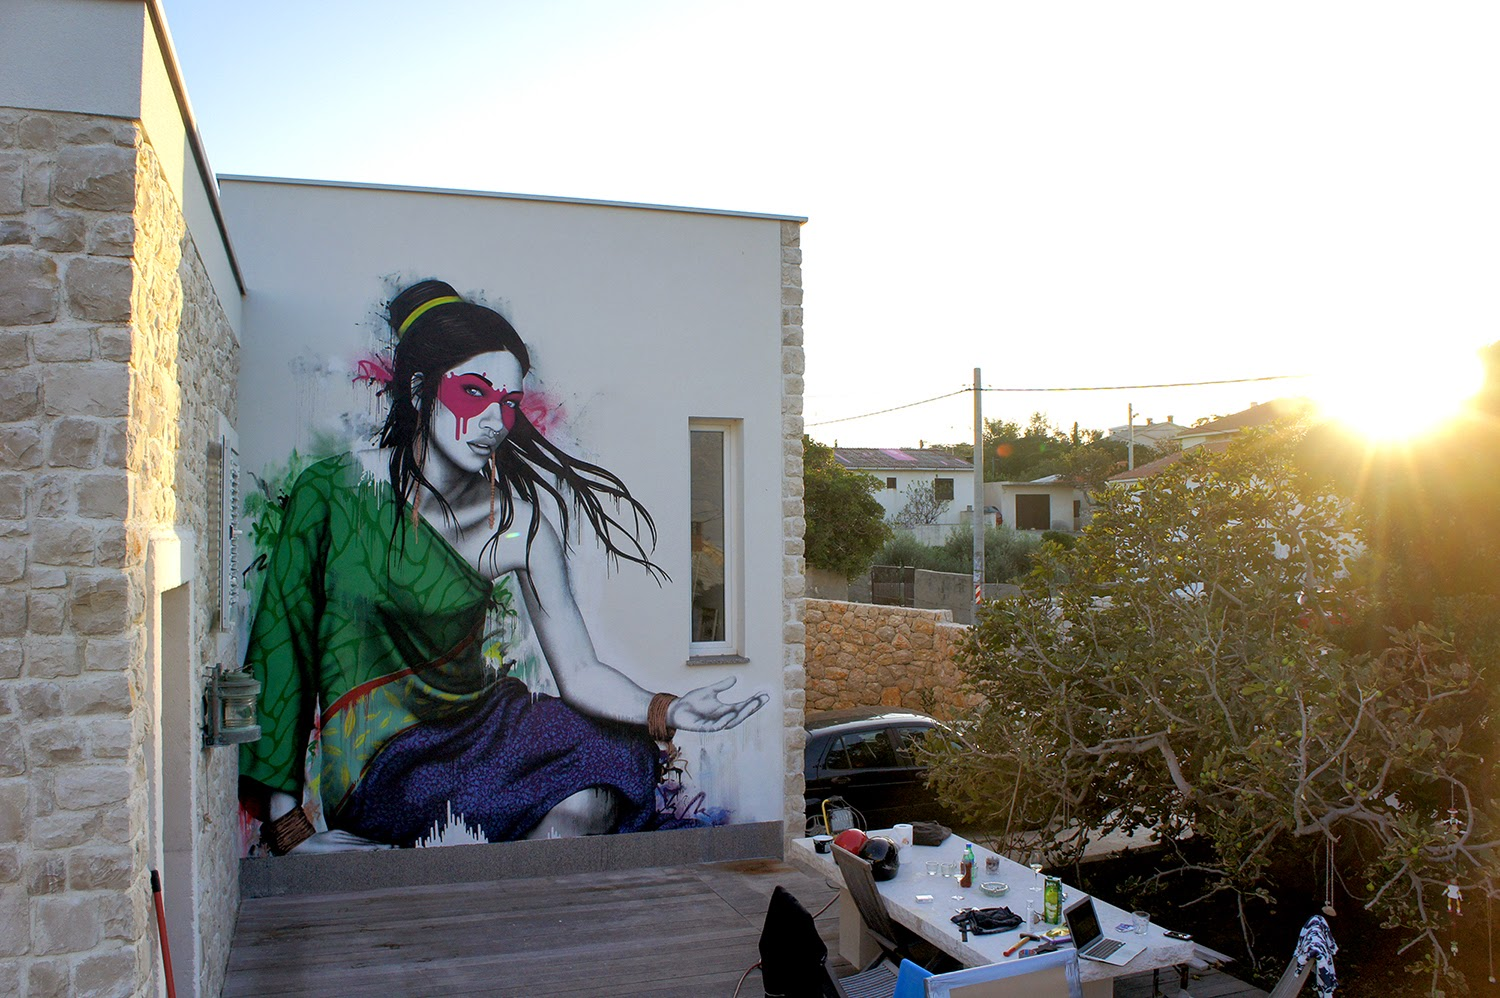 Fin DAC is currently in Croatia where he spent a few days working on this sweet new piece somewhere on the streets of Ražanac.